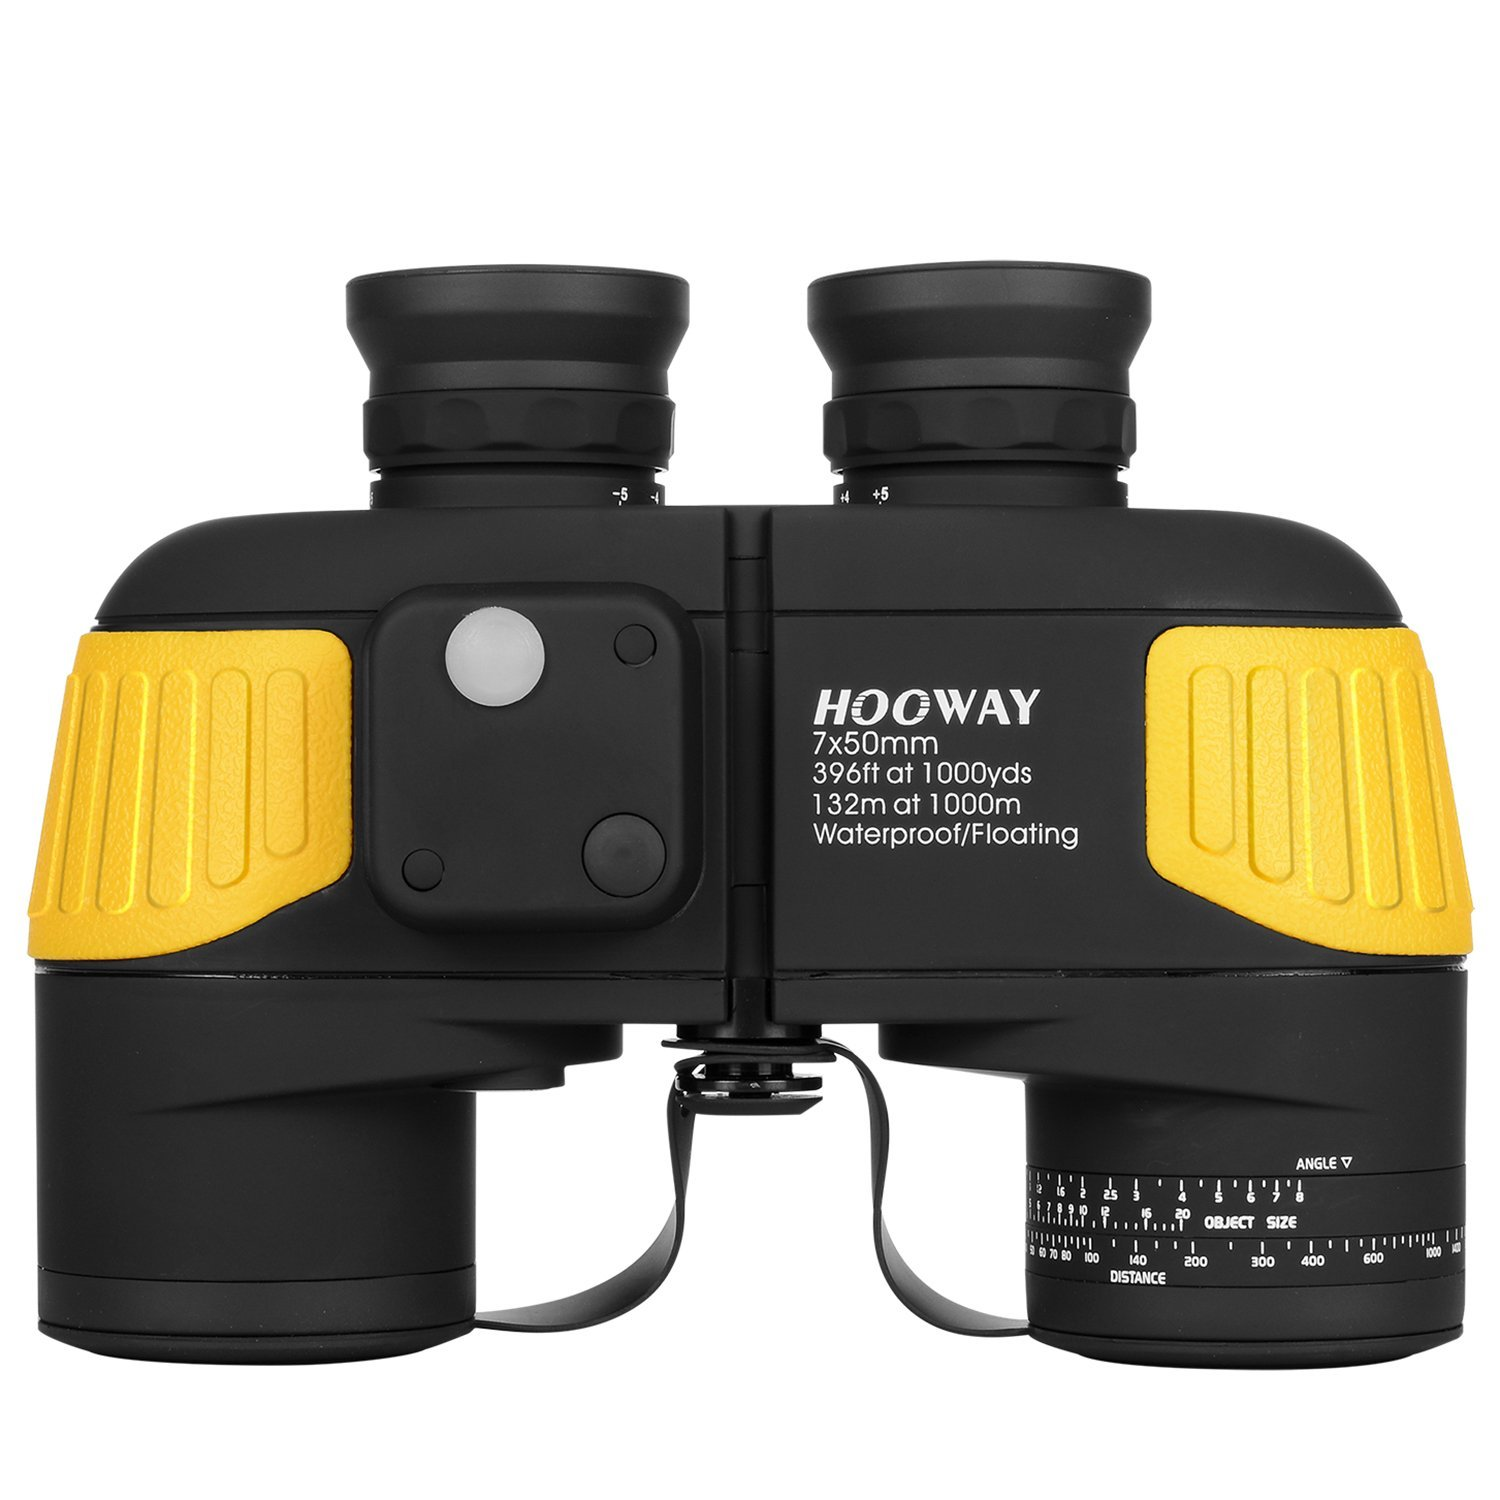 Hooway 7x50 Waterproof Fogproof Military Marine Binoculars w/ Internal Rangefinder & Compass for Navigation,Boating,Fishing,Water Sports,Hunting and More